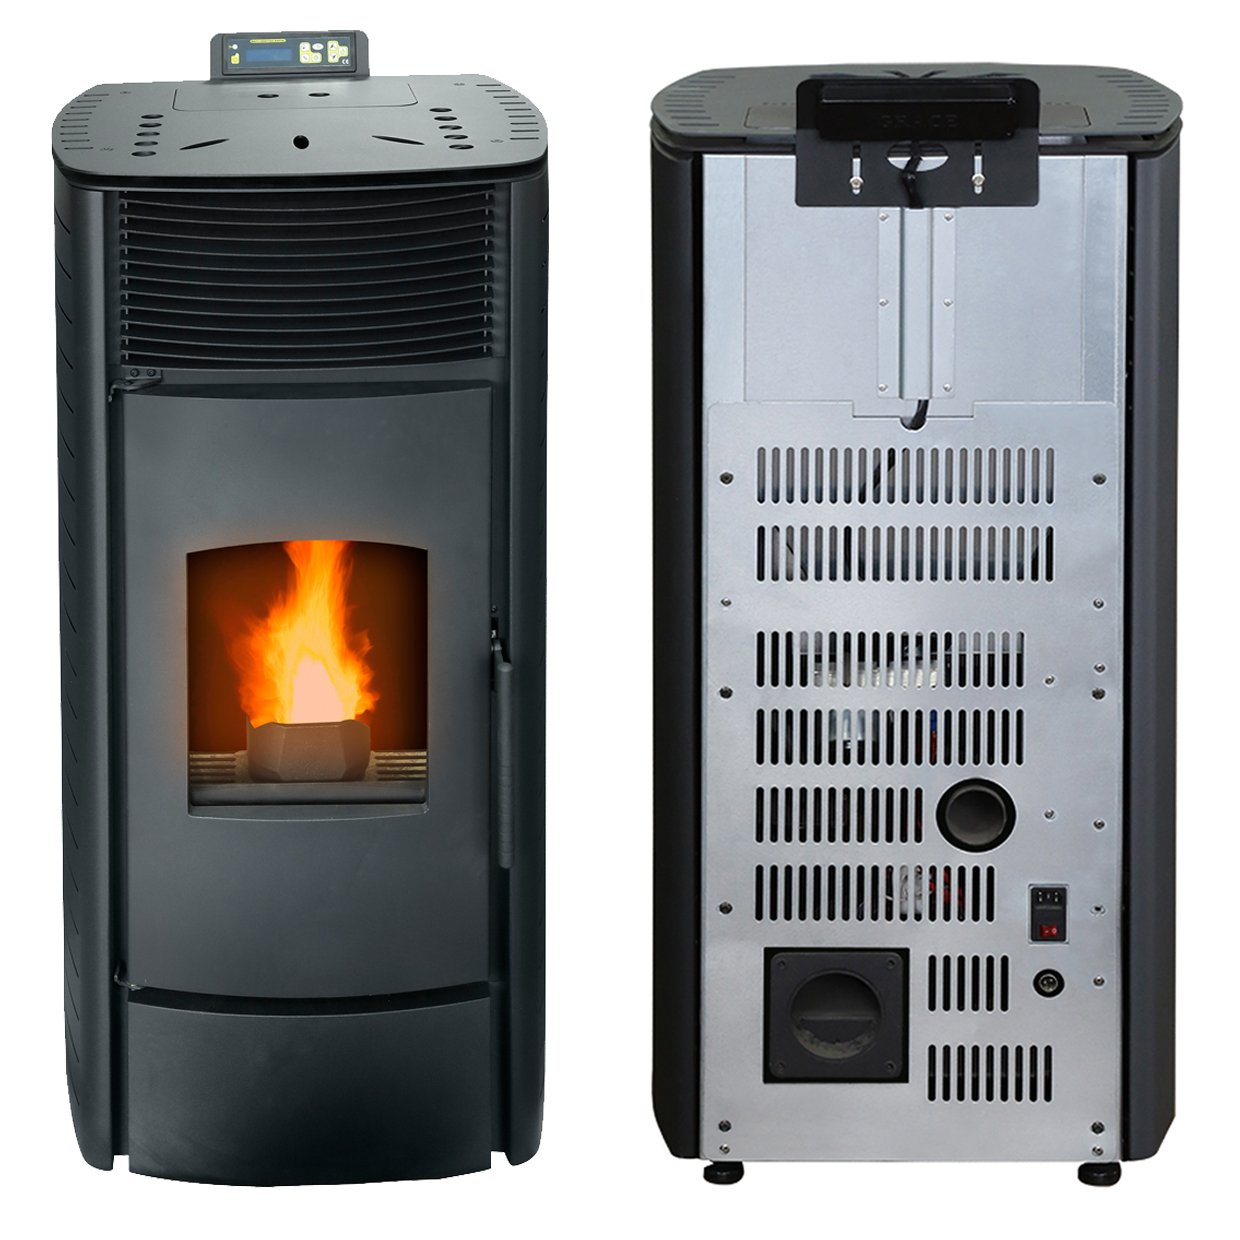 Can you hook up a pellet stove to a chimney